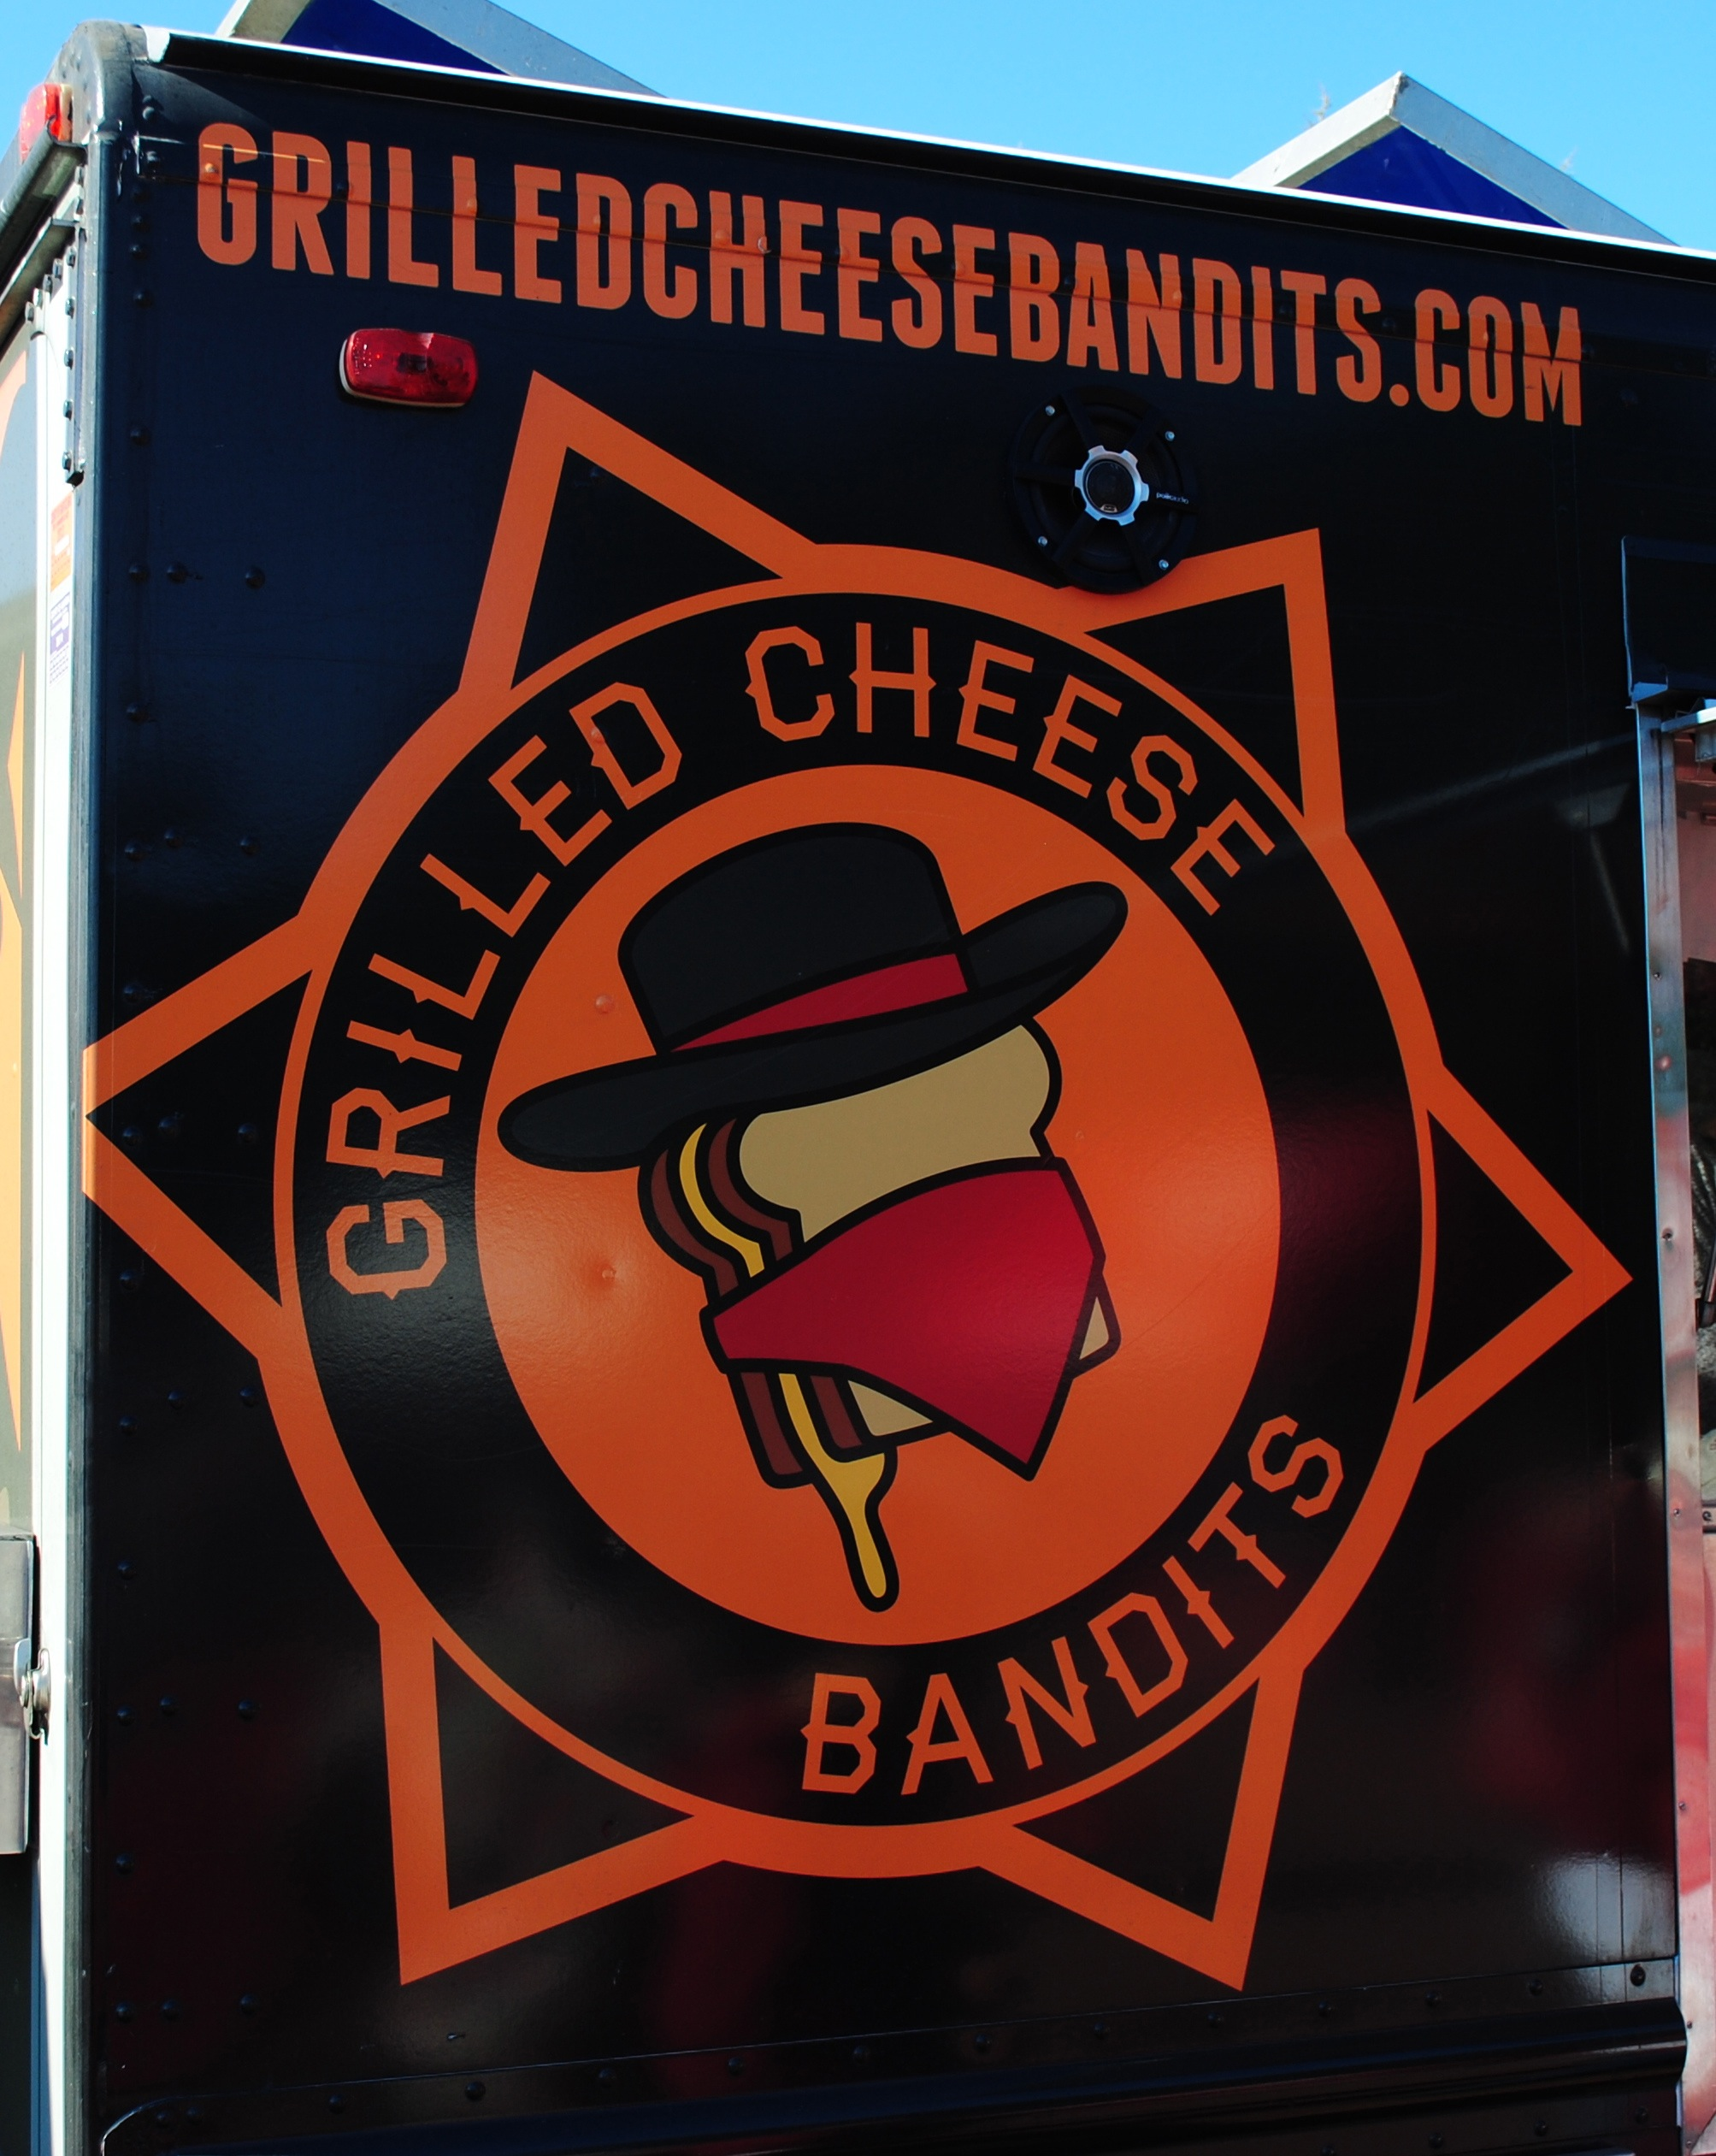 Food truck for Grilled Cheese Bandits. Image by Brian Cantonl